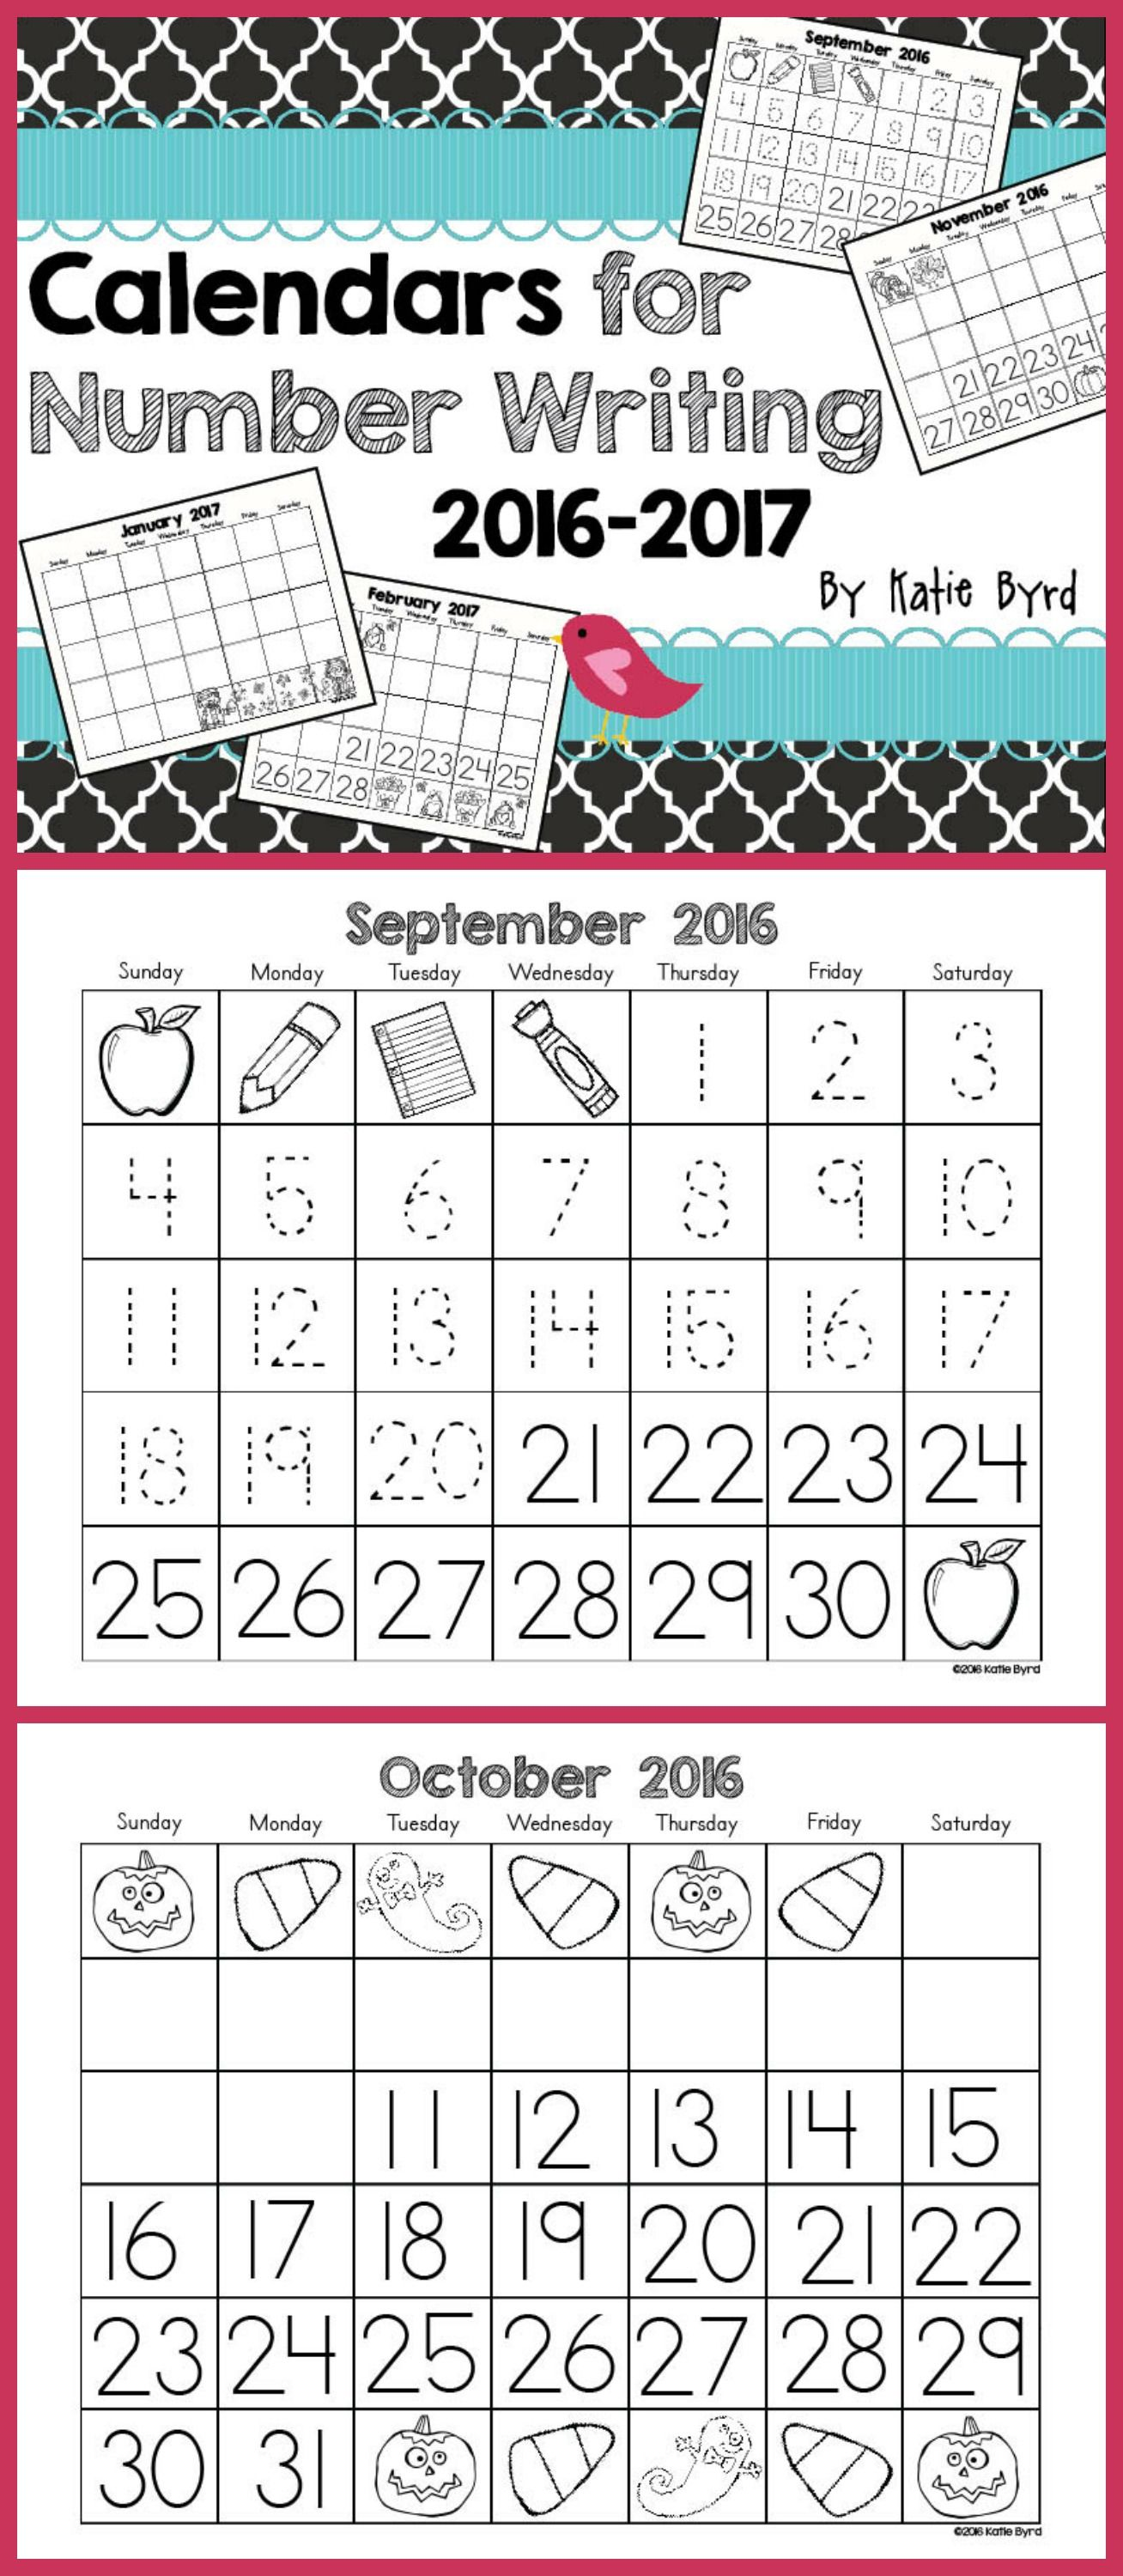 Student made calendars are a great way to practice number writing, patterns, and do a monthly seasonal art project for families. These are differentiated with four versions each month to meet the needs of all your students. The perpetual version gives you a newly designed version each year for many years to come. Perfect addition to your kindergarten or first grade classroom. $